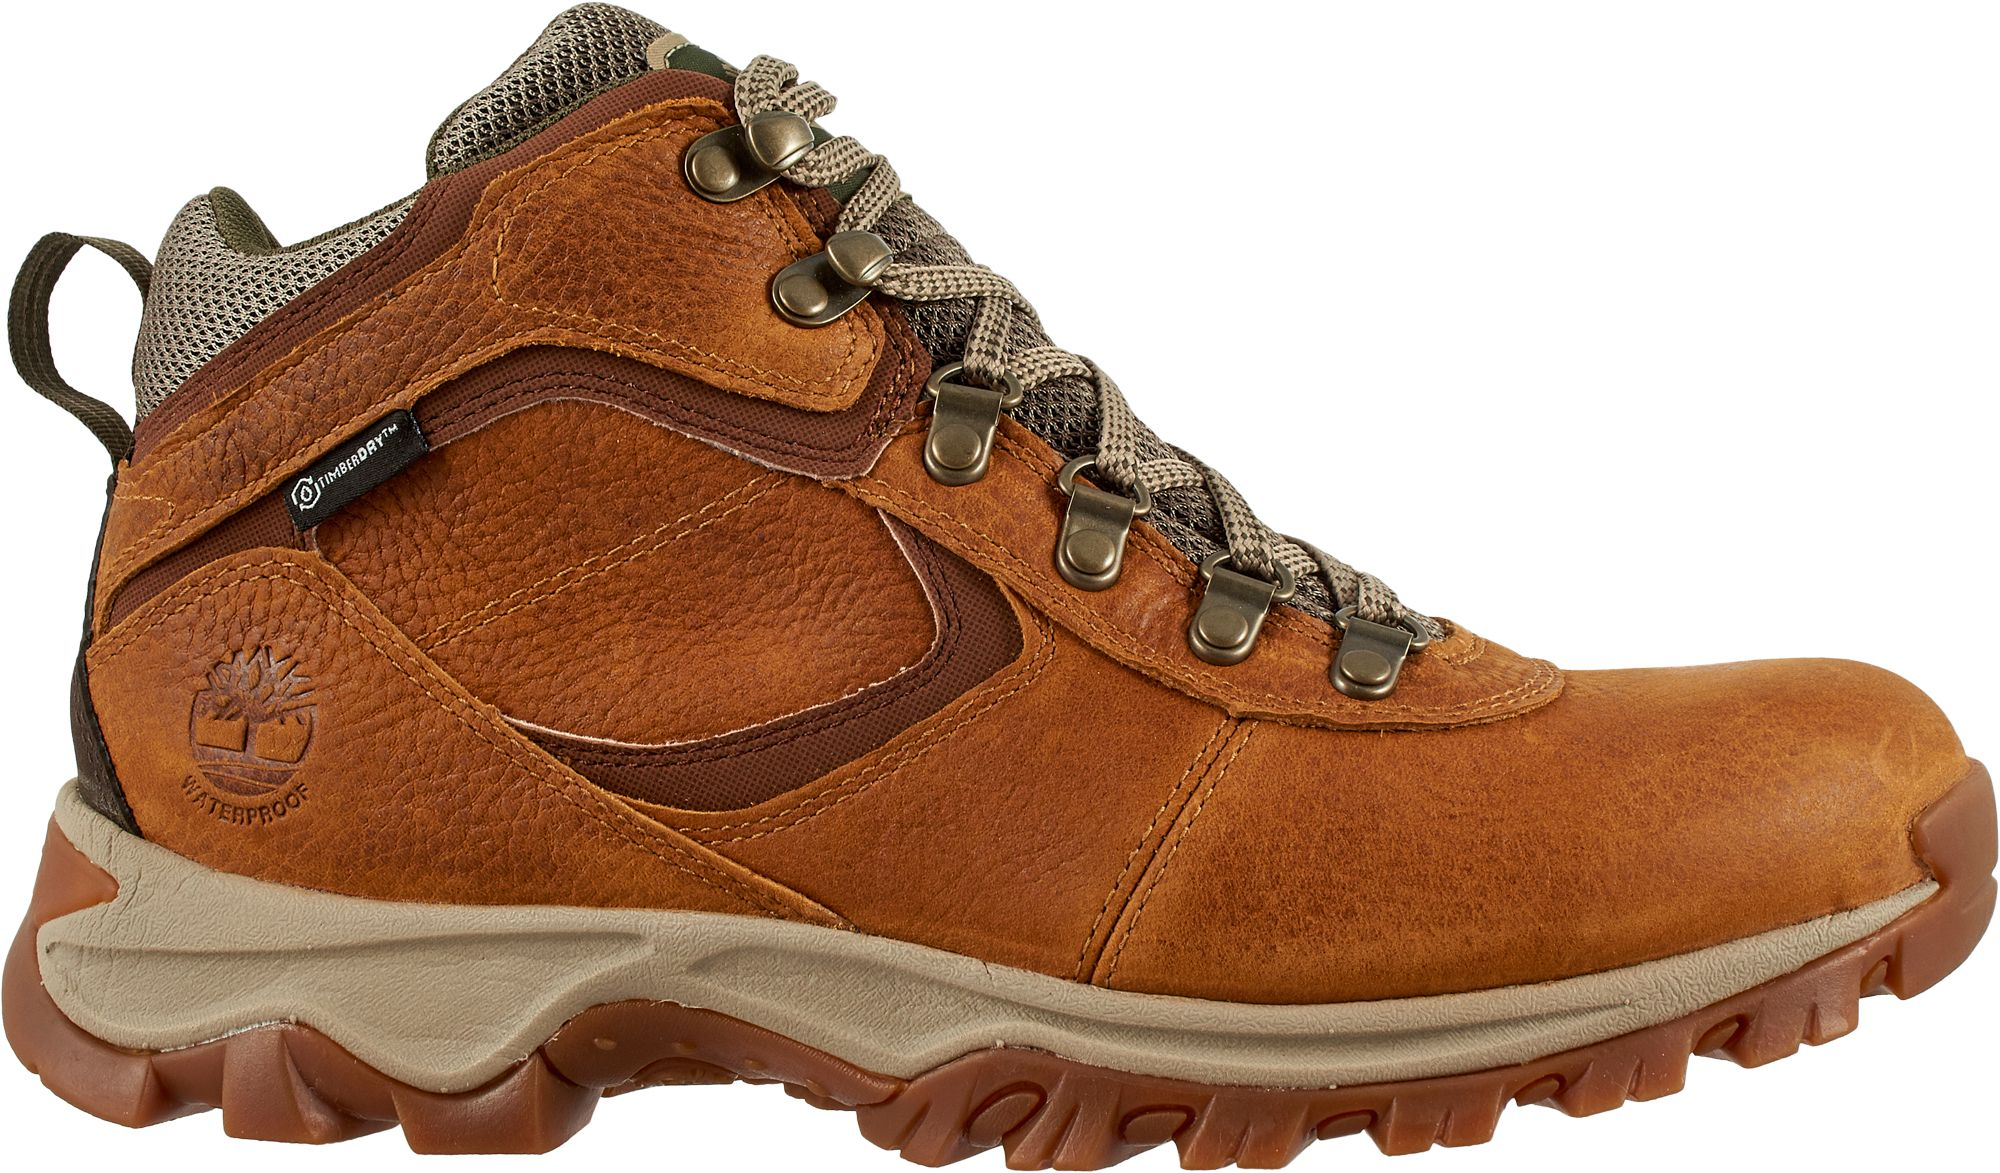 Are Timberland Hiking Boots Waterproof